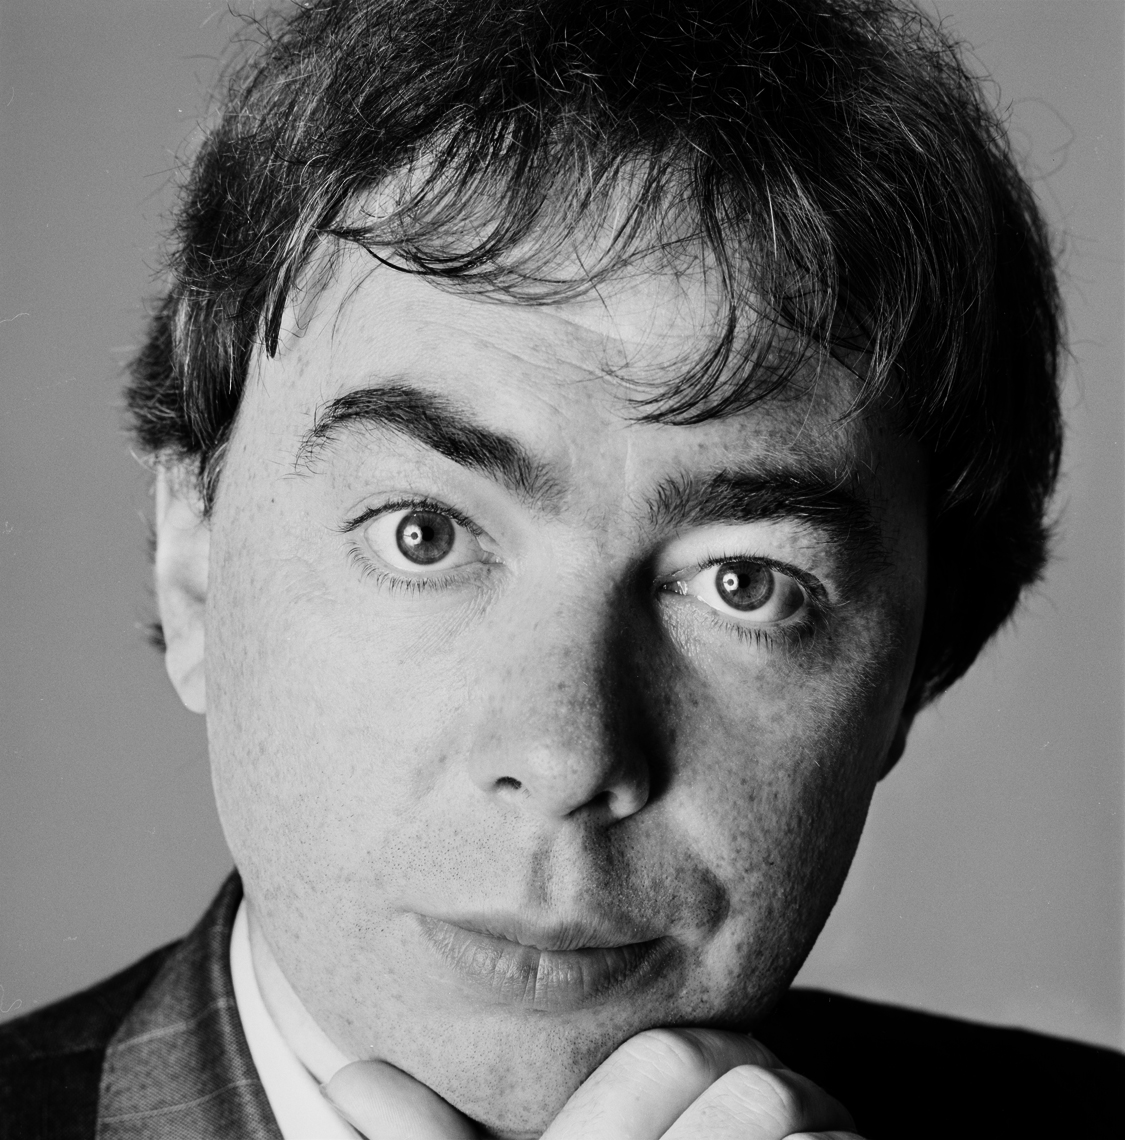 ANDREW_LOYD_WEBBER_001_being_retouched.jpg